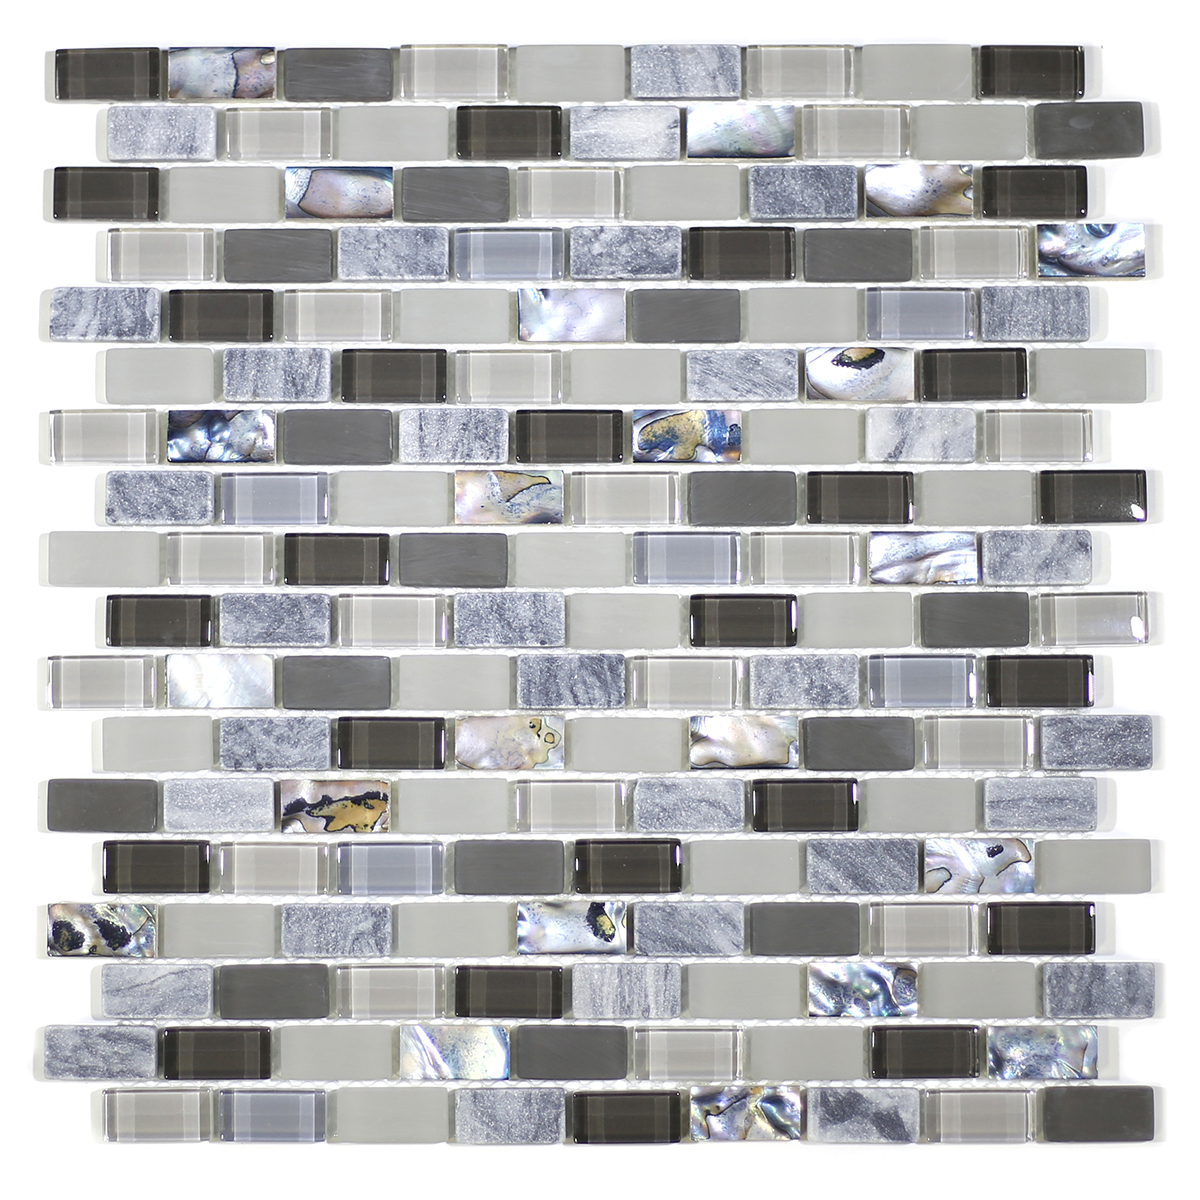 MA69-LB  BRICK SHELL, MARBLE AND GLASS MOSAIC